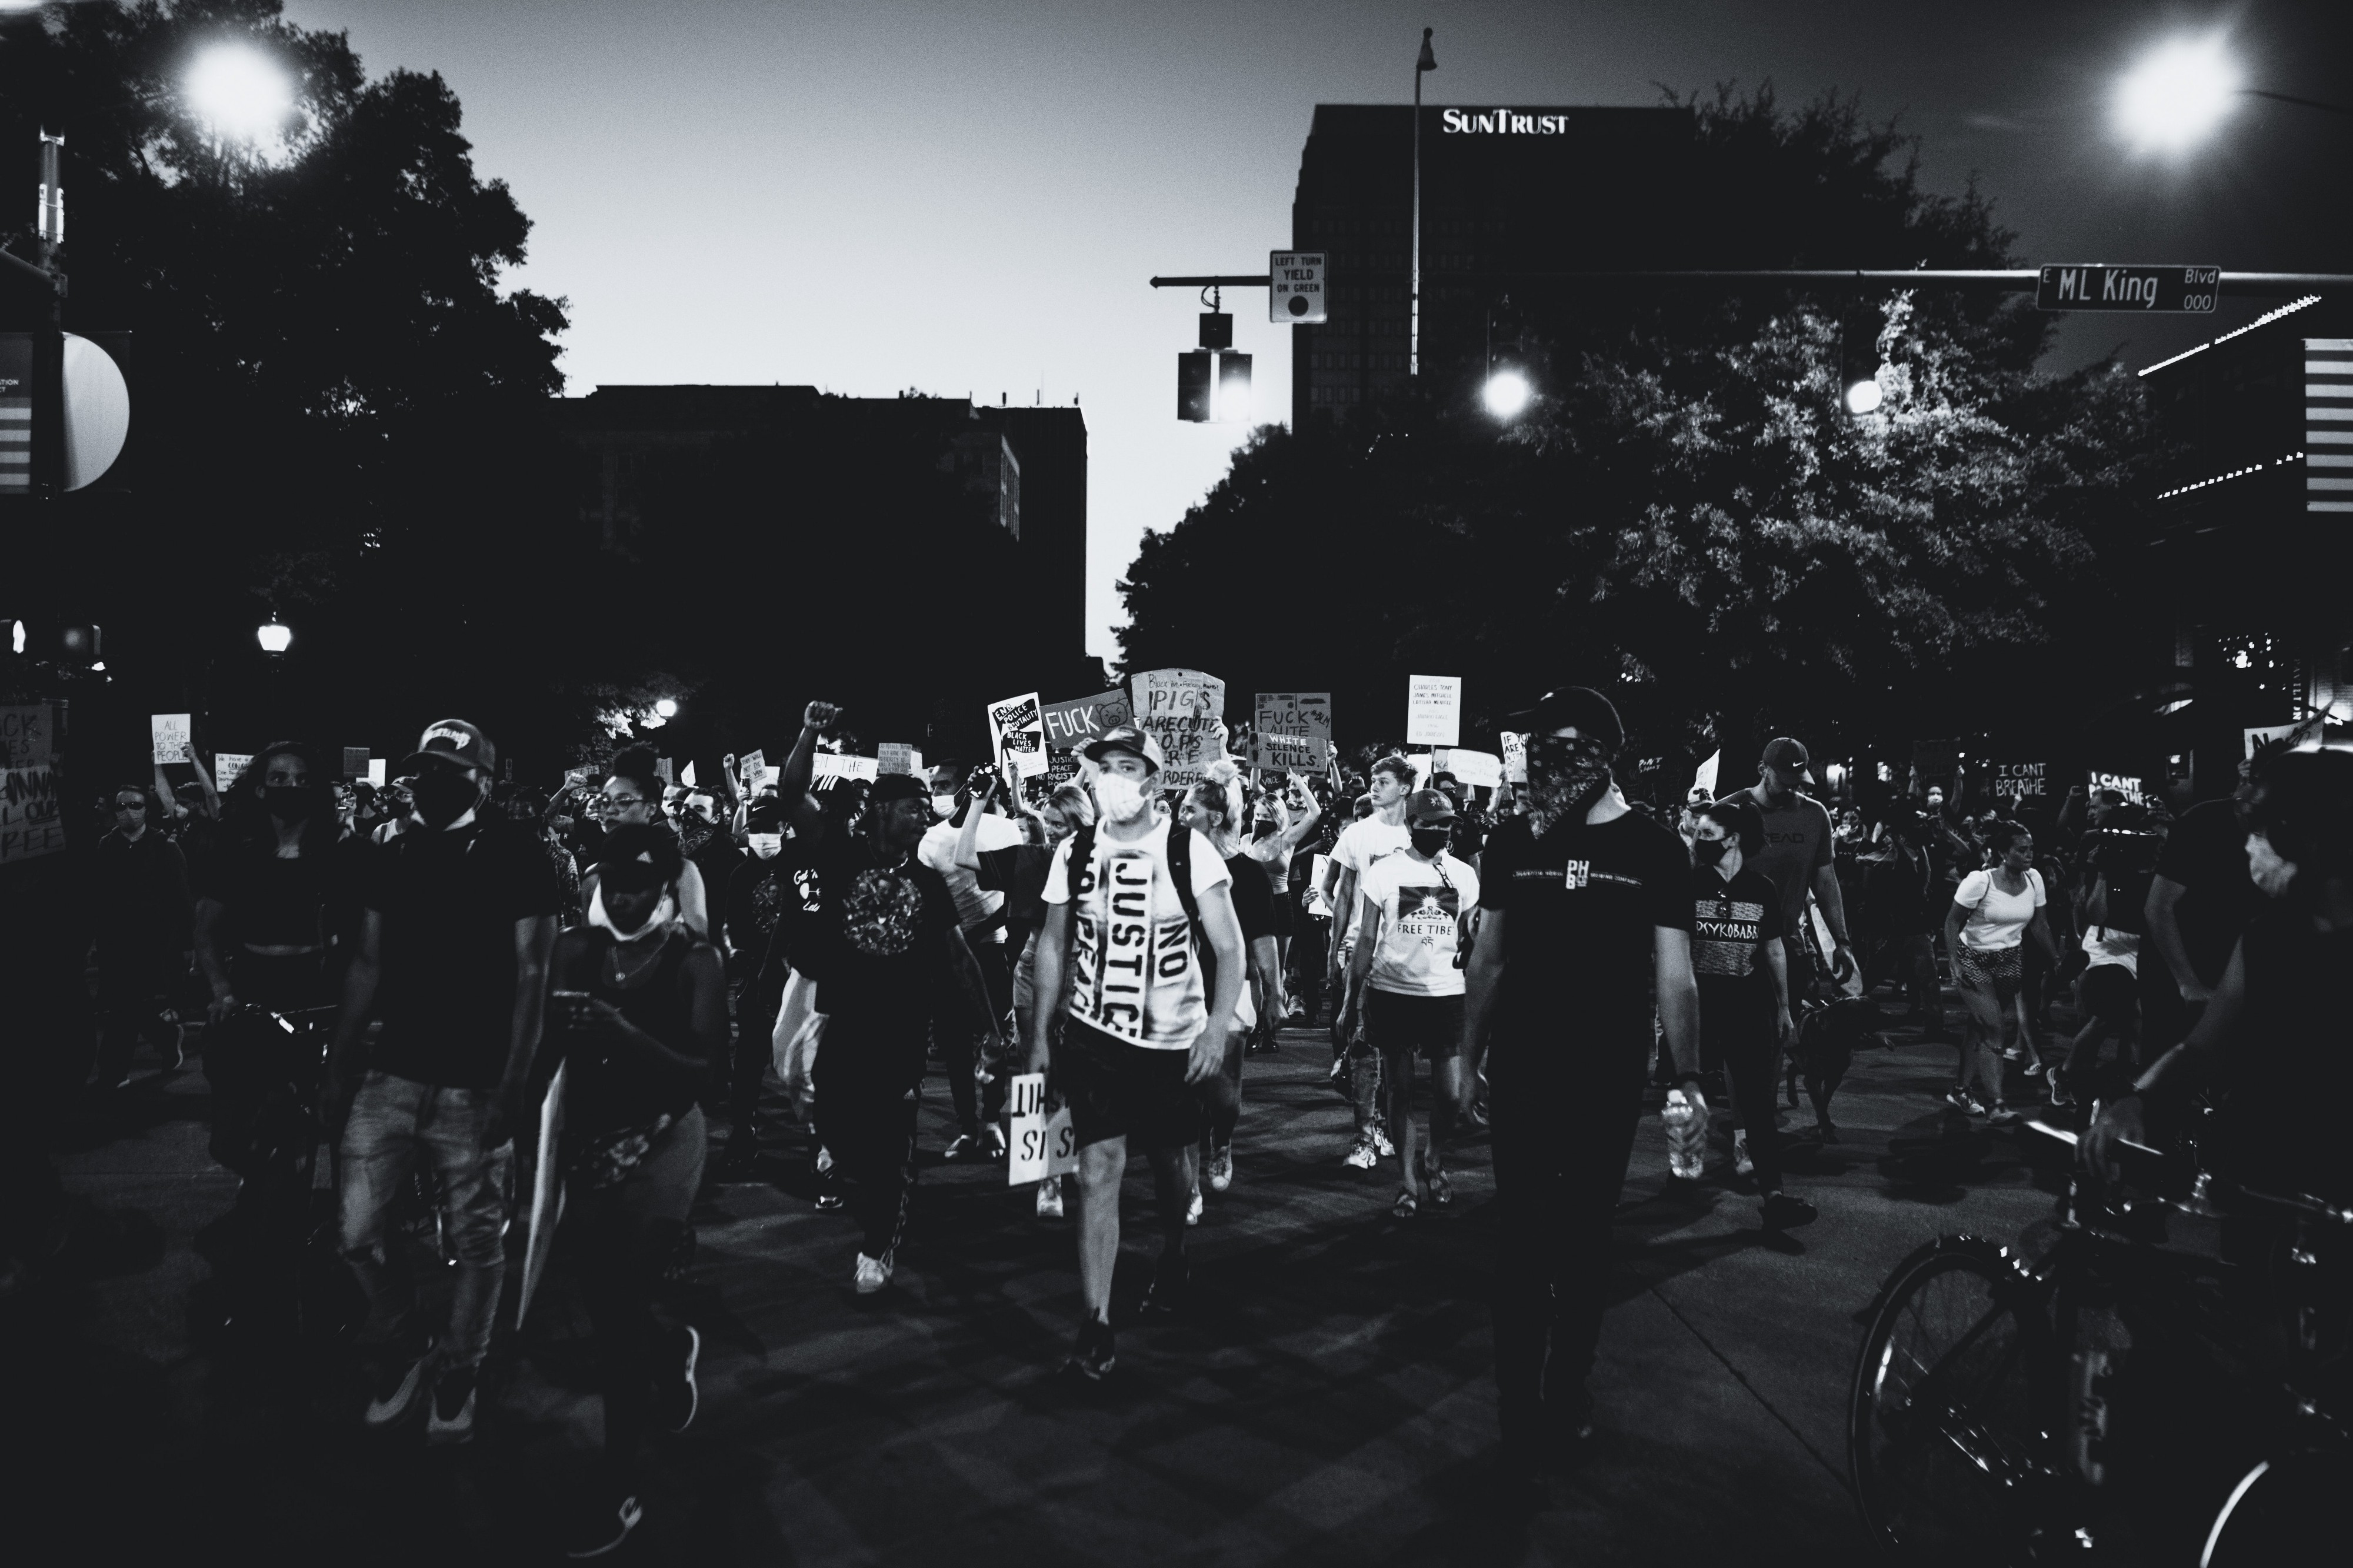 Black and white photo of a crowd at part of a peaceful racial justice protest.